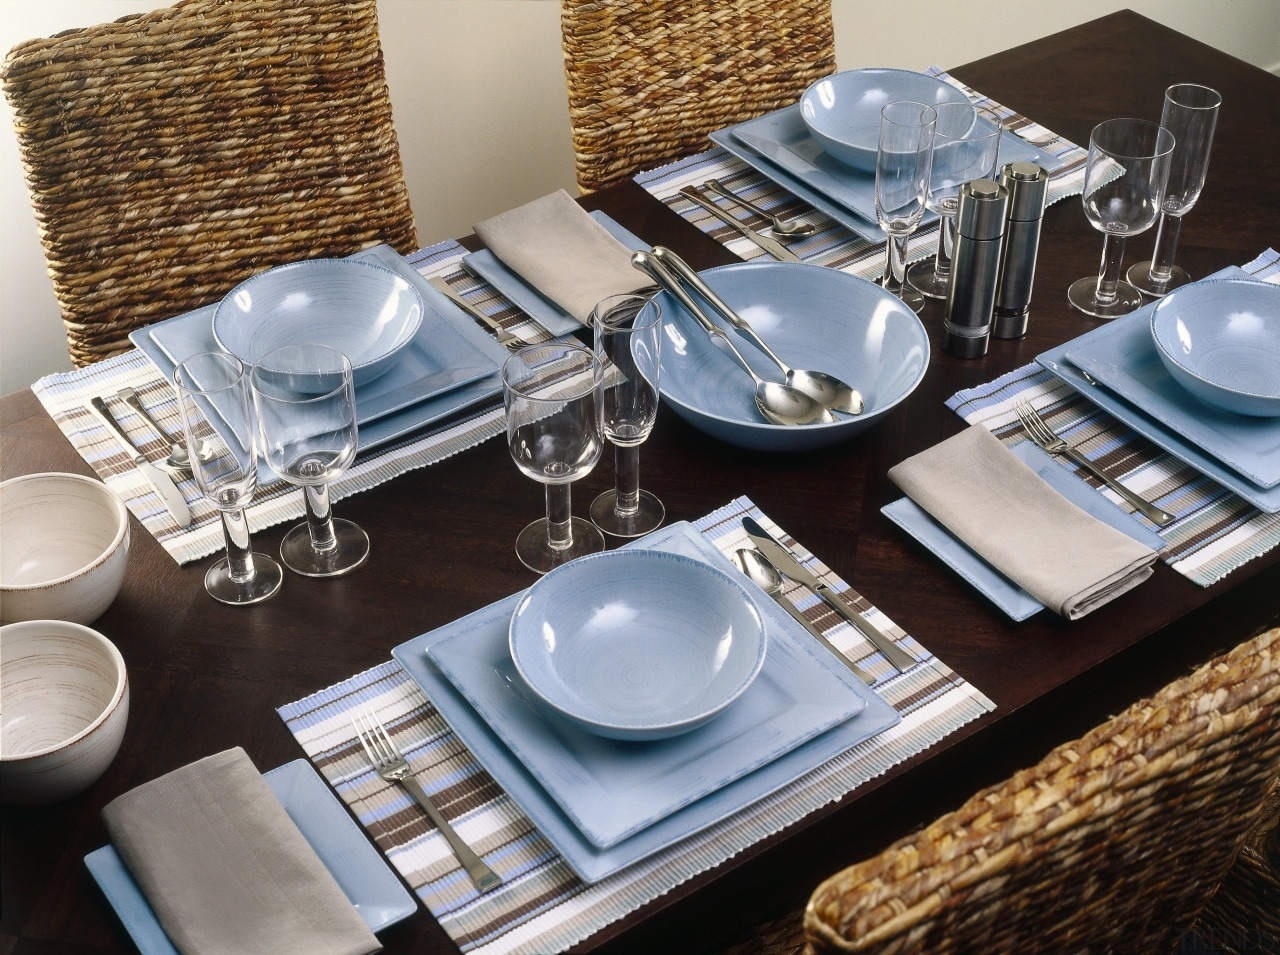 Rattan, seagrass and cane are in – an